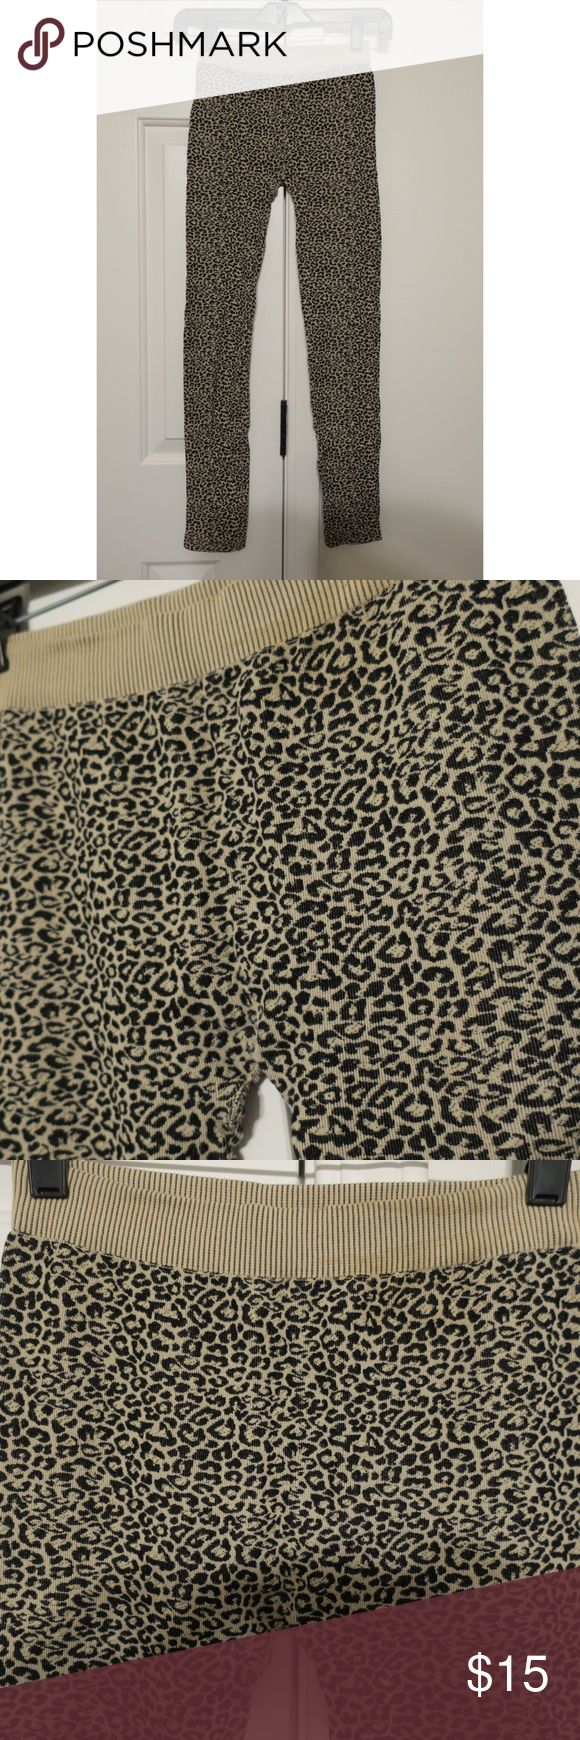 Leopard print leggings Super cute leopard print leggings! Very stretchy and comfortable. Will fit a wide variety of body types. There's no tag so I'm unsure of the size, but I'm a small and these leggings fit me well but still could stretch to fit a medium easily. Only worn once. No pilling or pulls in the fabric. Still looks brand new! Bought at a local boutique. Pants Leggings